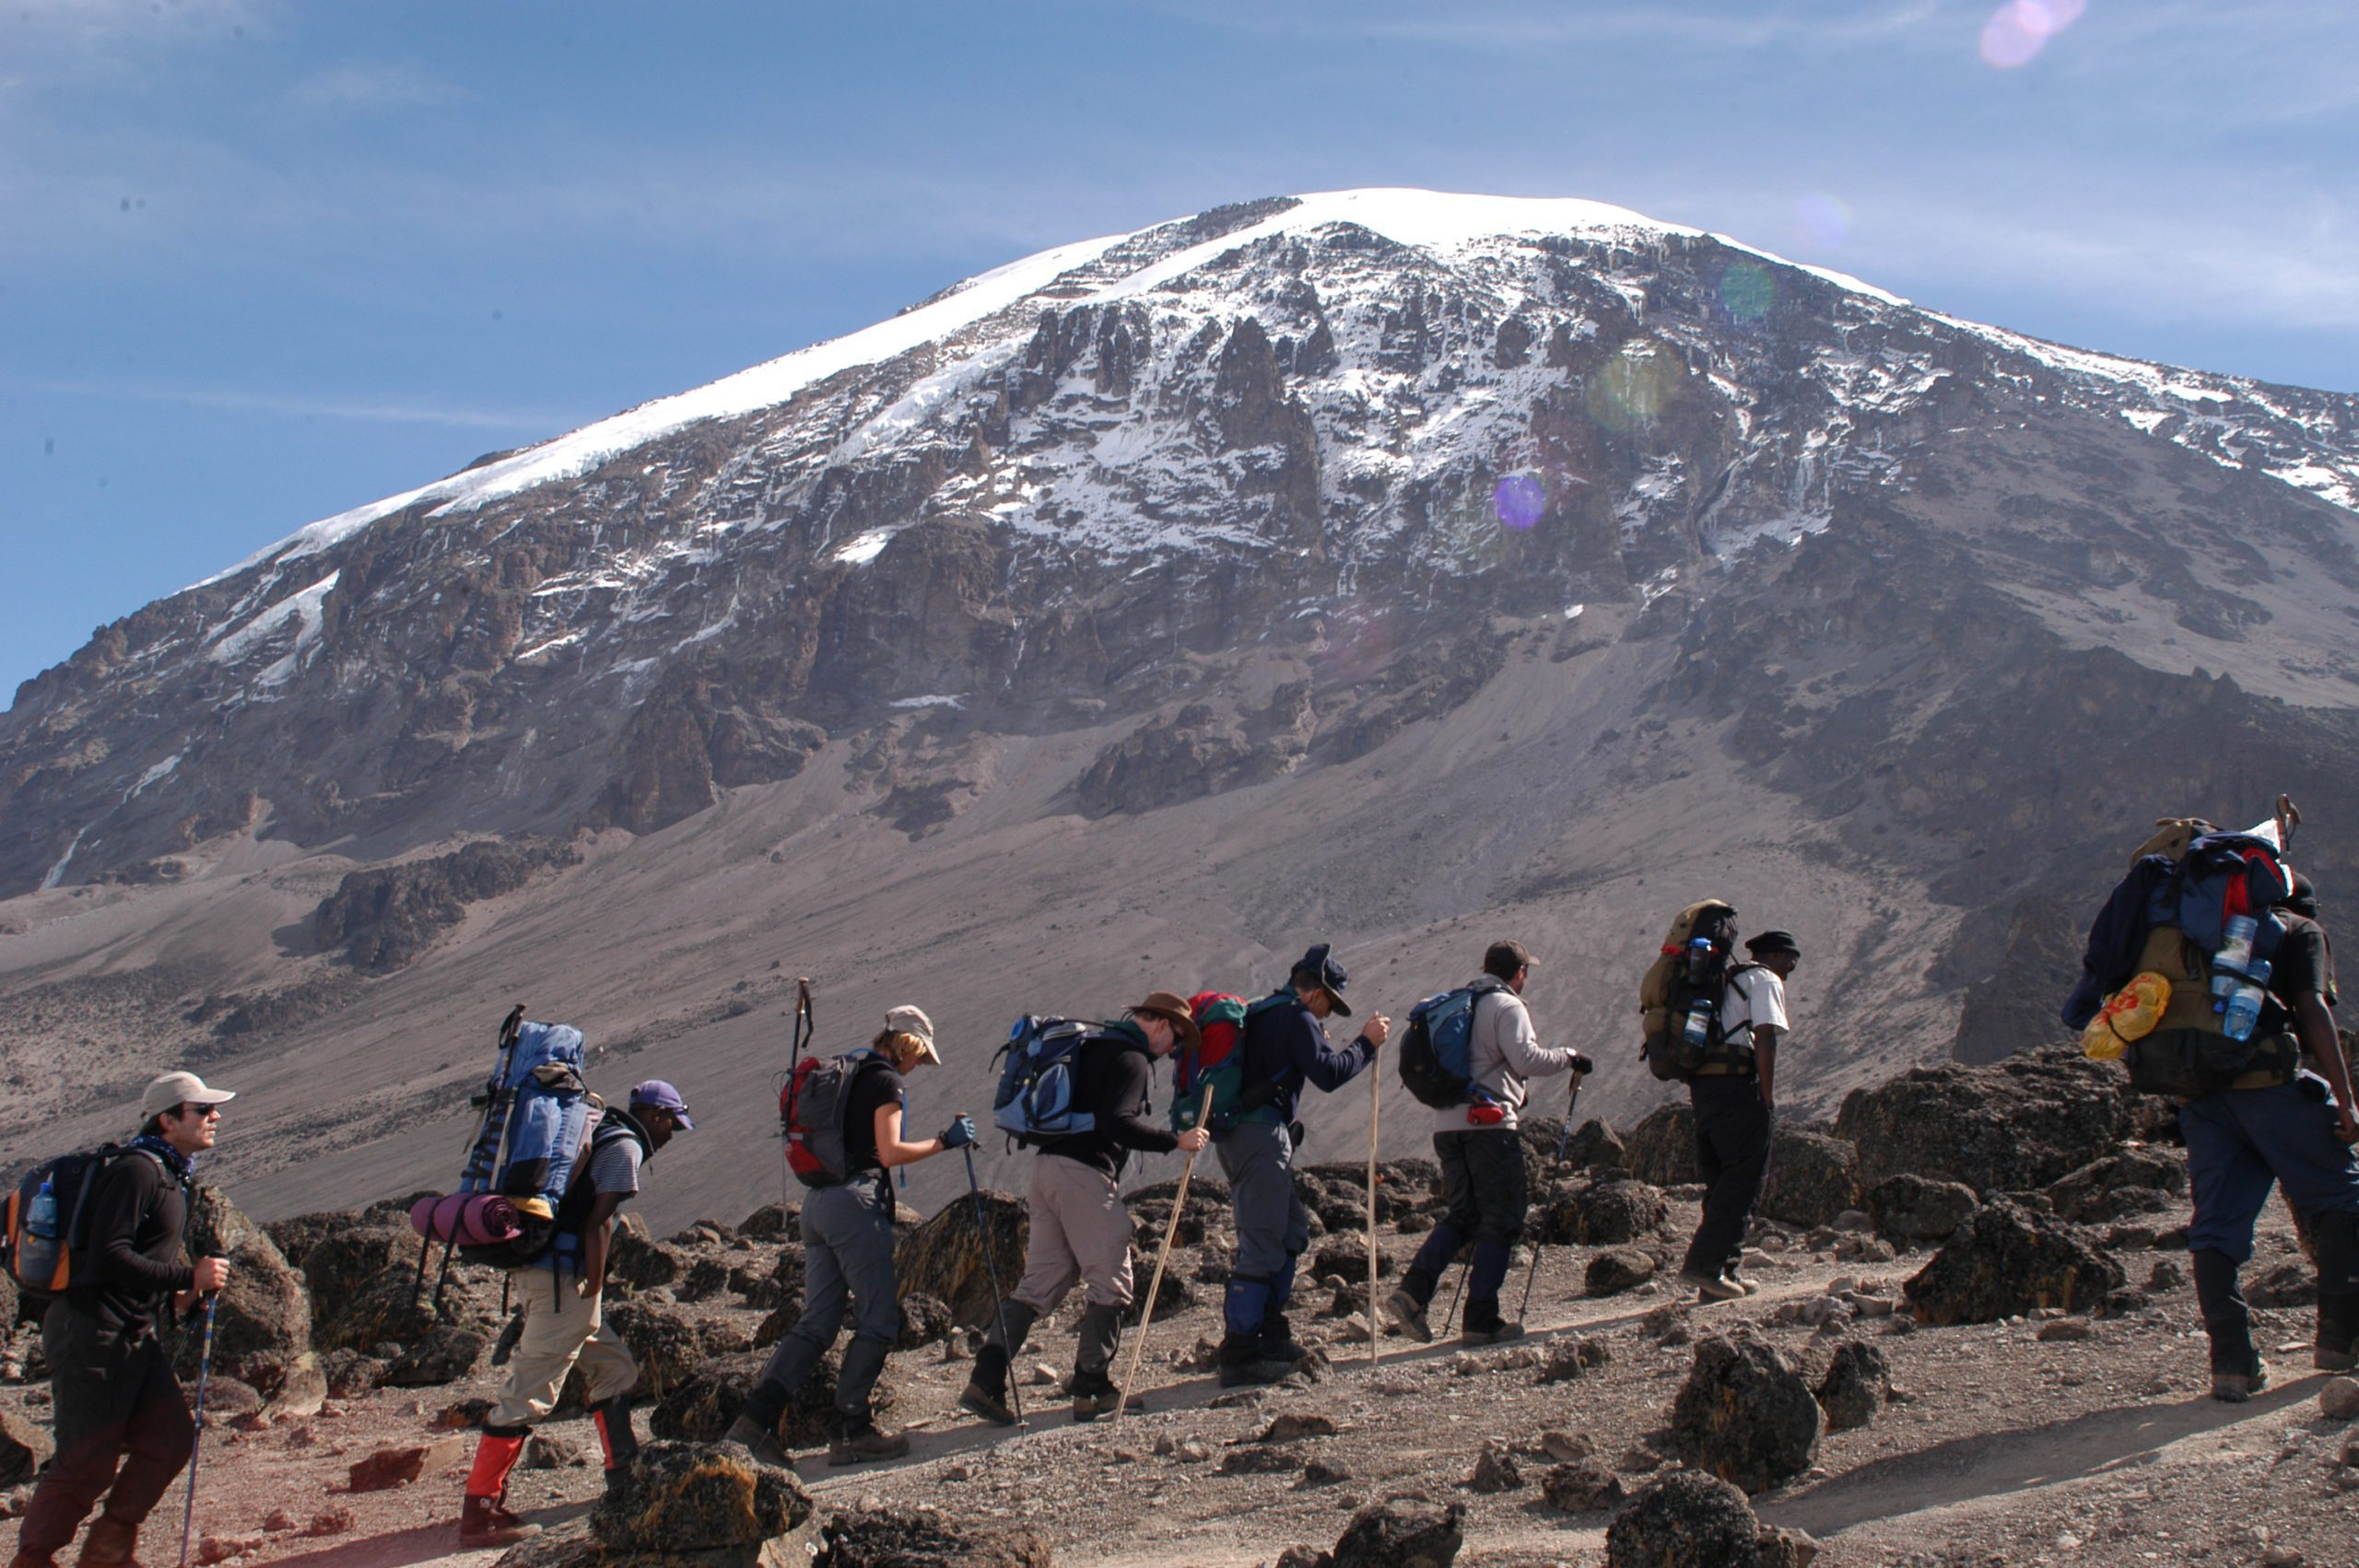 a group of hikers on our Mount Kilimanjaro climb to the peak